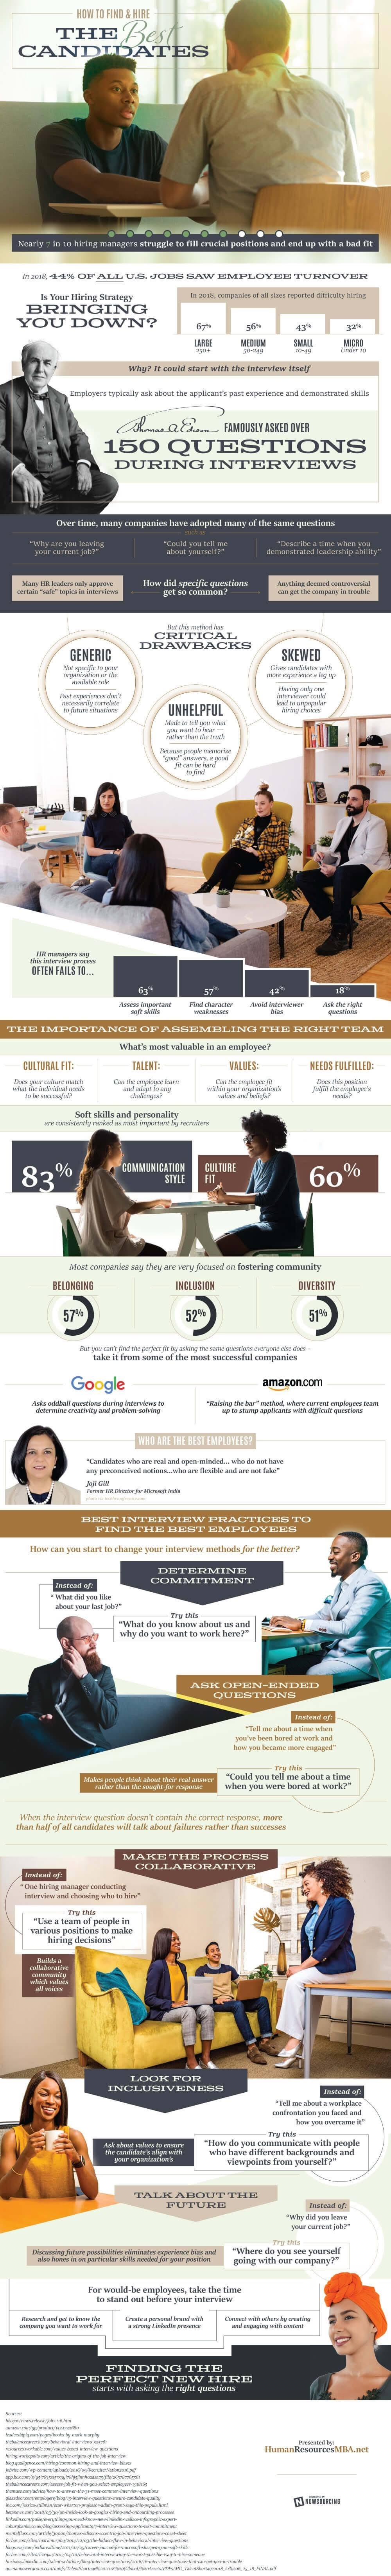 How To Find and Hire The Best Candidates #infographic